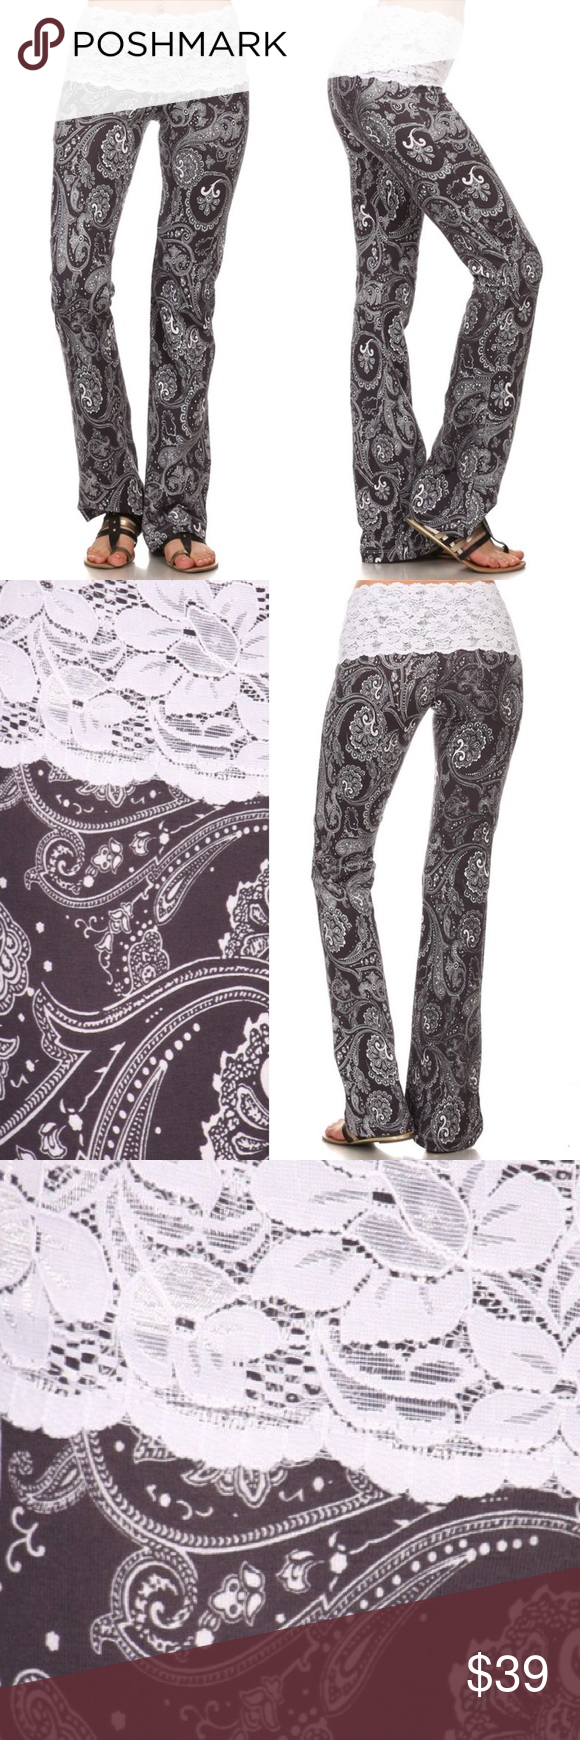 92d6d748c96abf Yoga Pants Paisley LACE Waist No Show Leisure NWT S M L available Chatoyant  C30178-10 CHARCOAL GRAY & WHITE LACE waist Paisley bootcut yoga leisure  resort ...